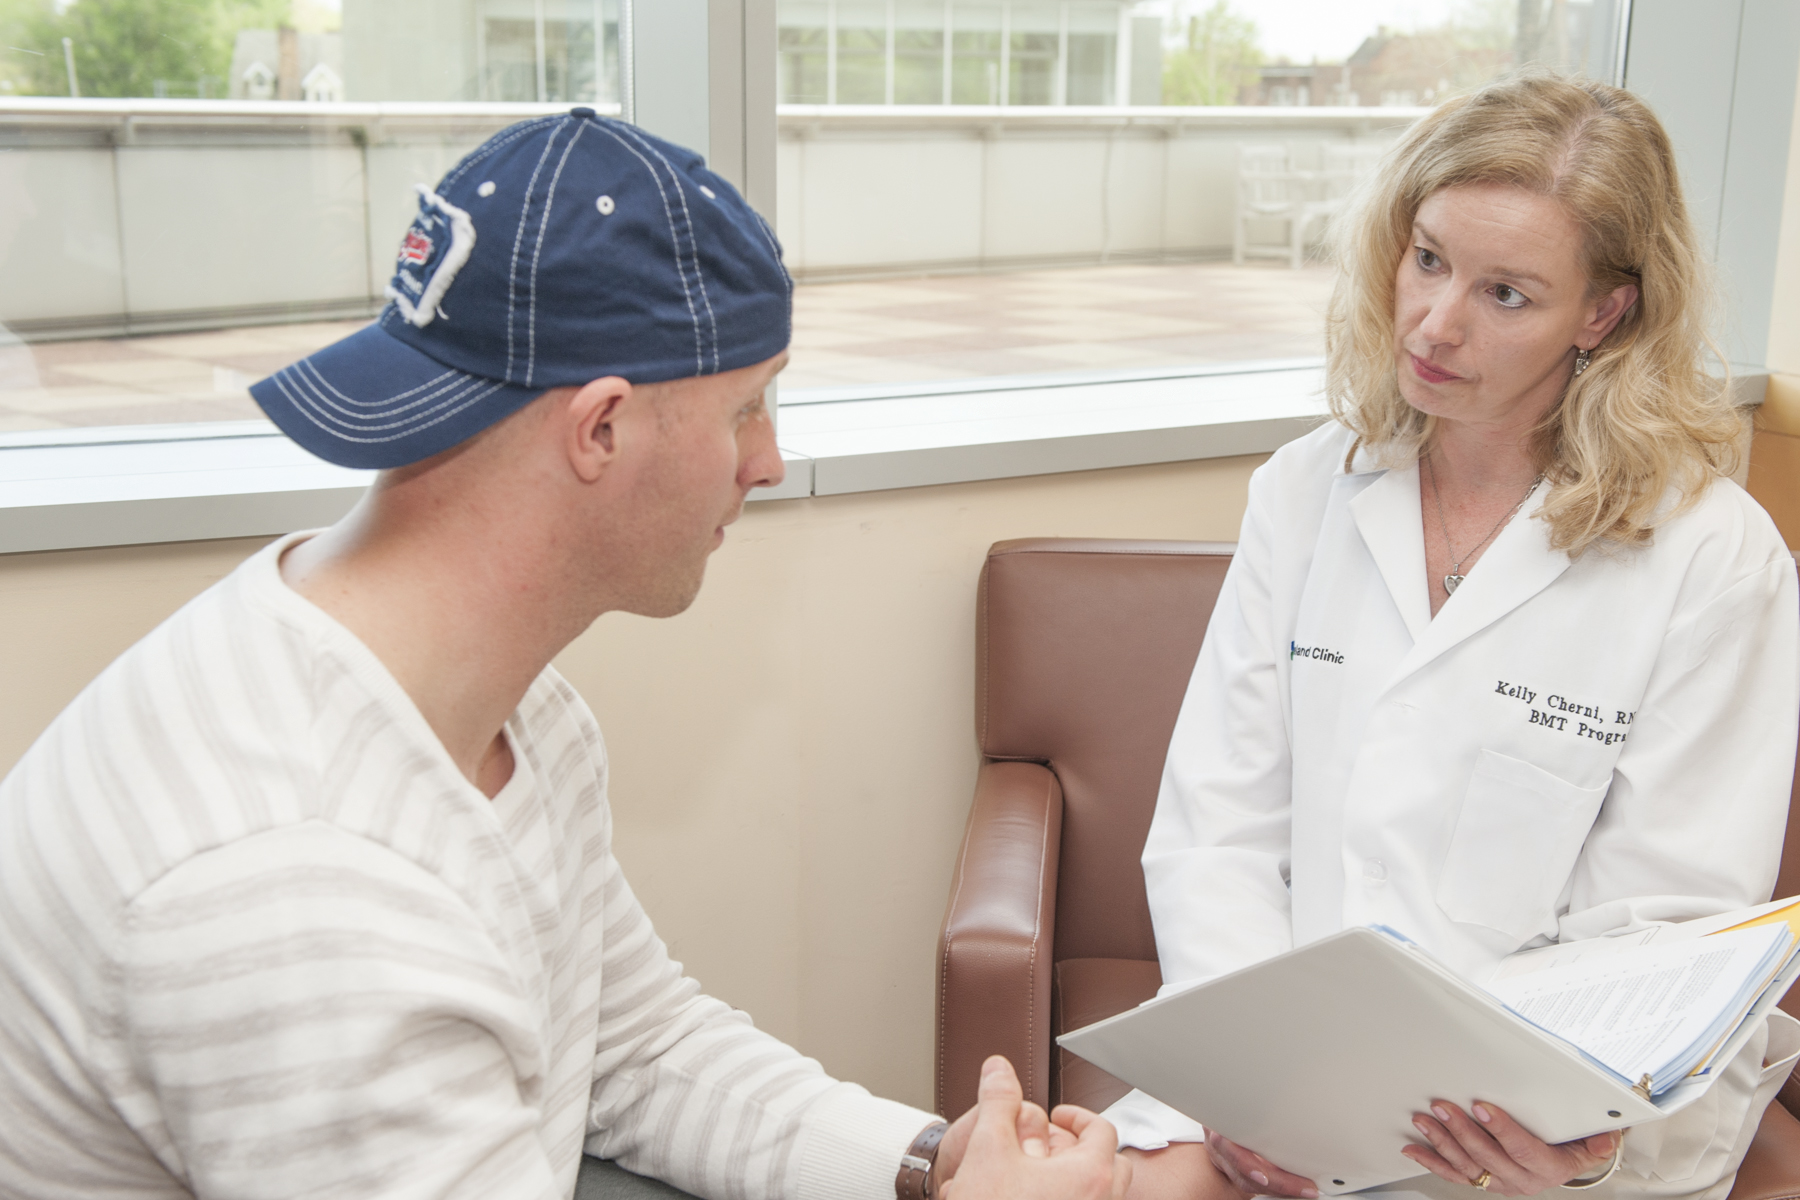 cancer bmt patient consult